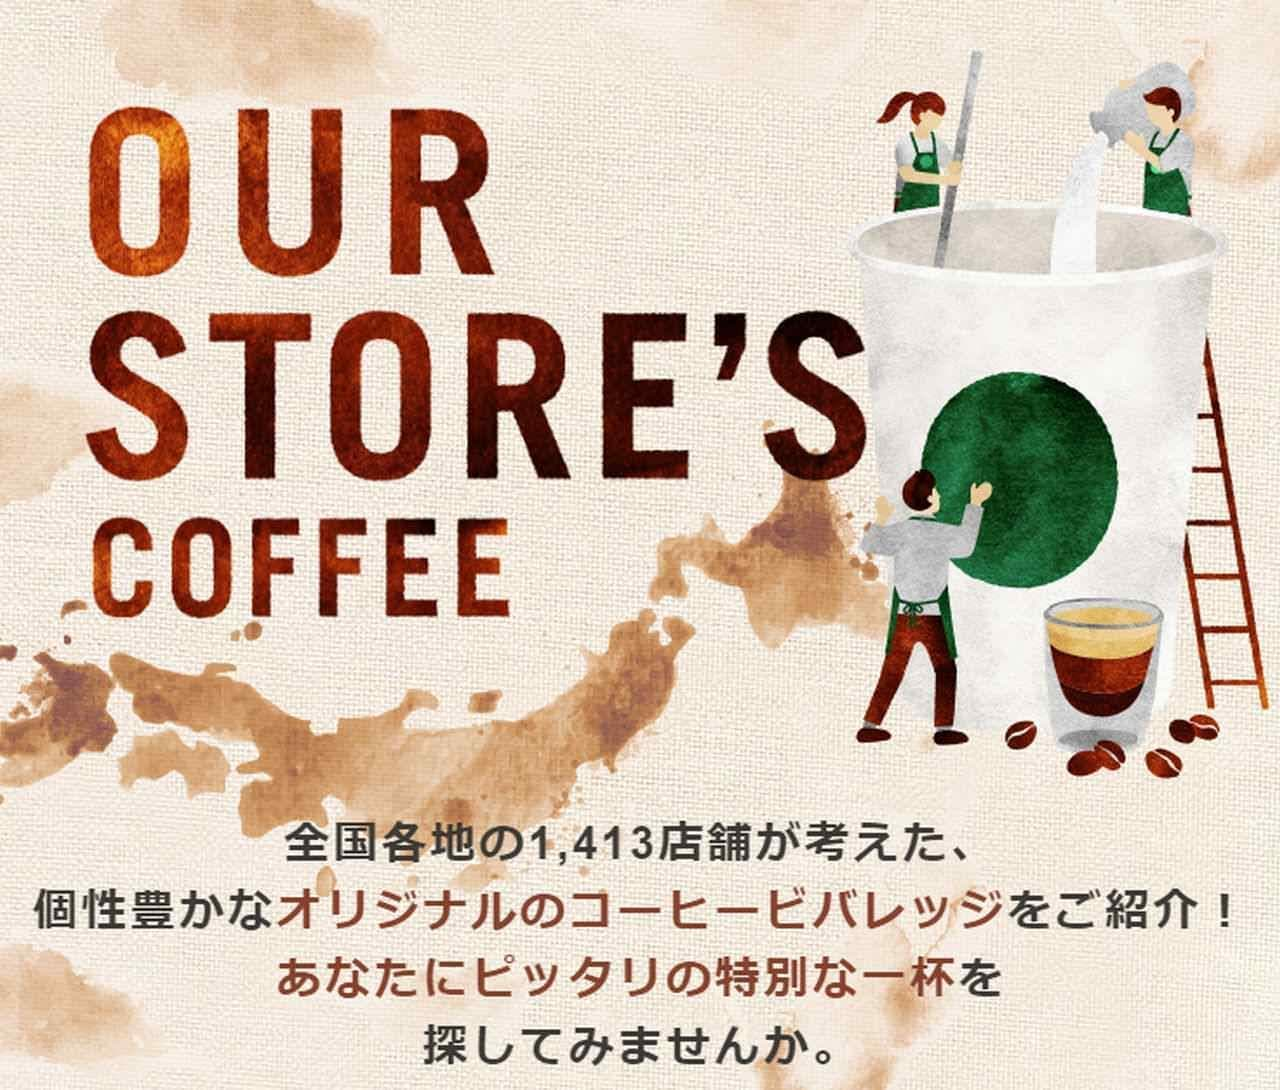 スタバ「Our Store's Coffee」